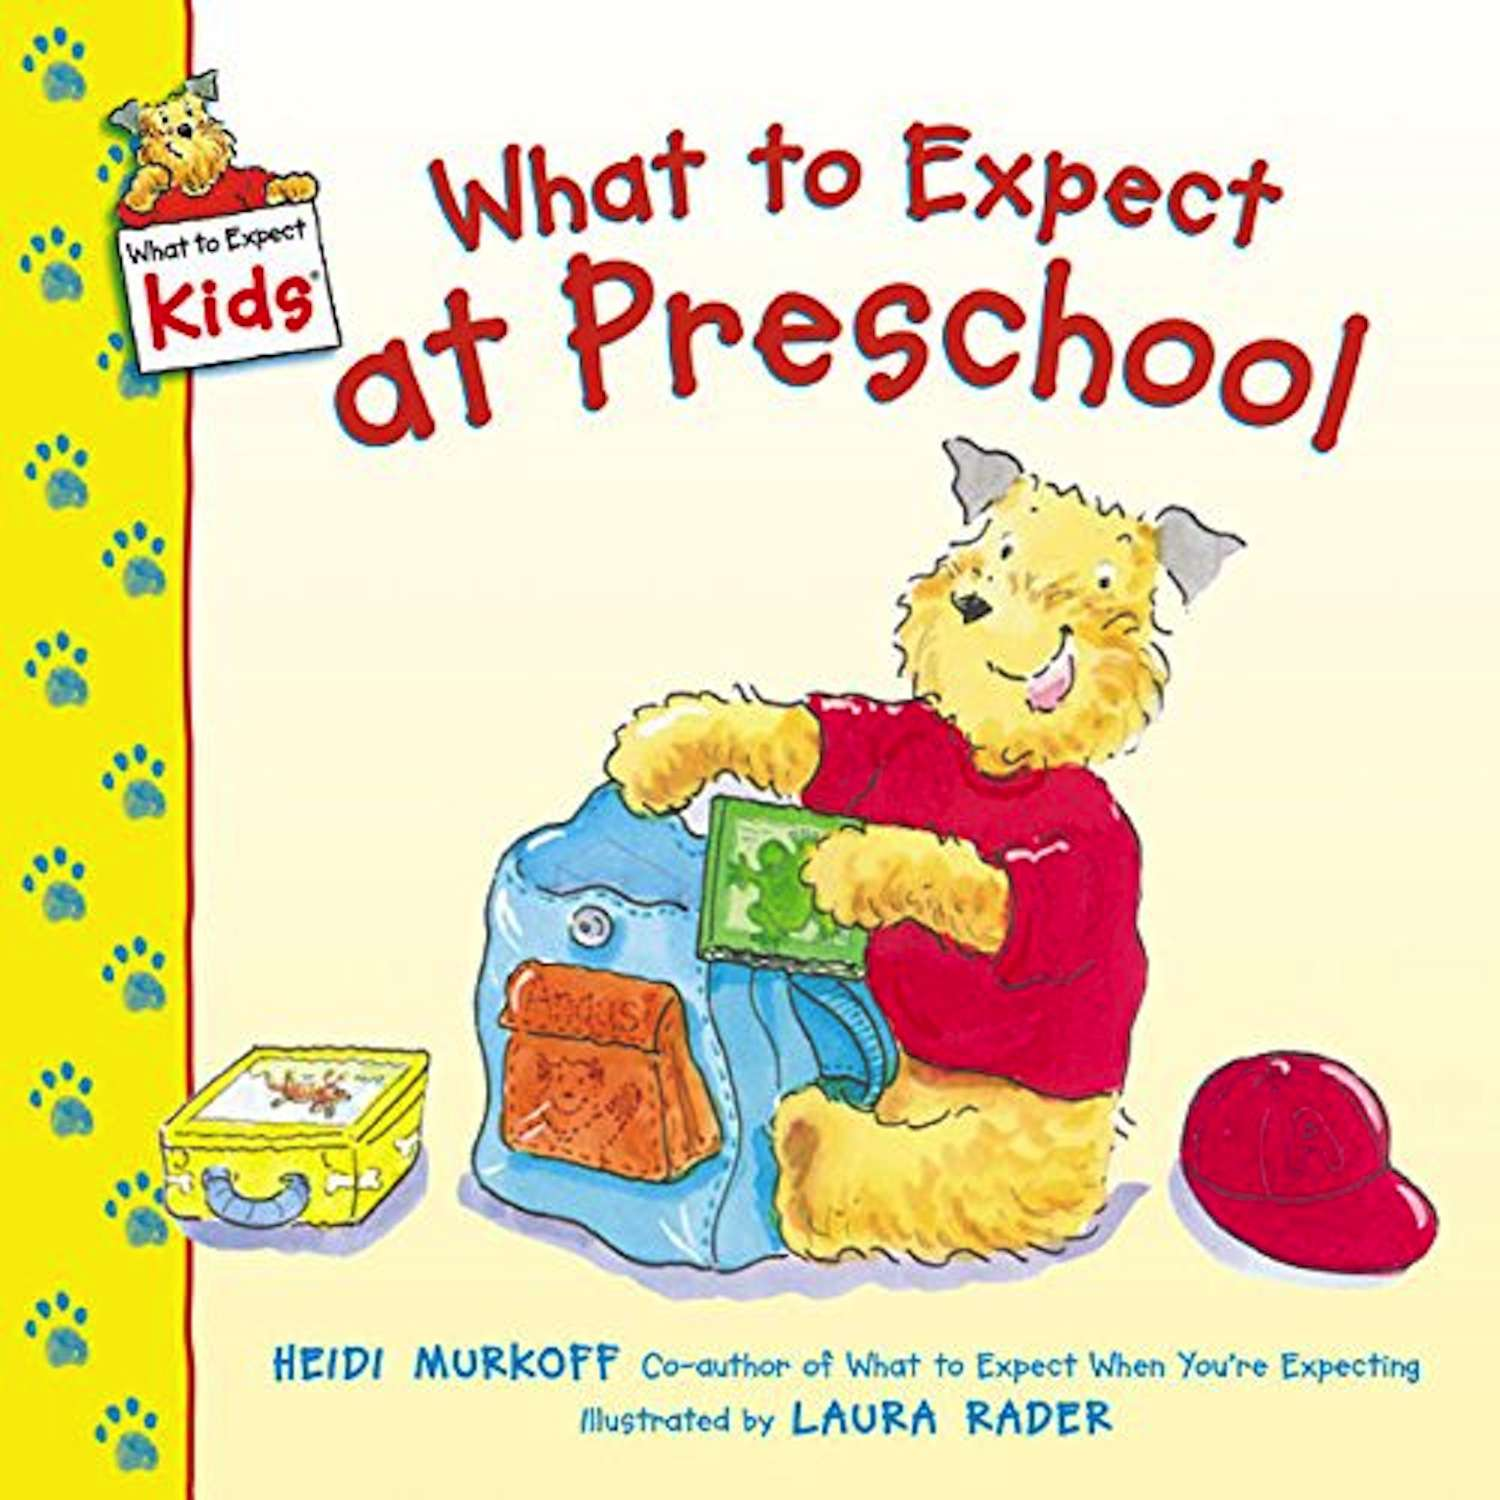 Starting-Preschool Books to Read With Your Kids